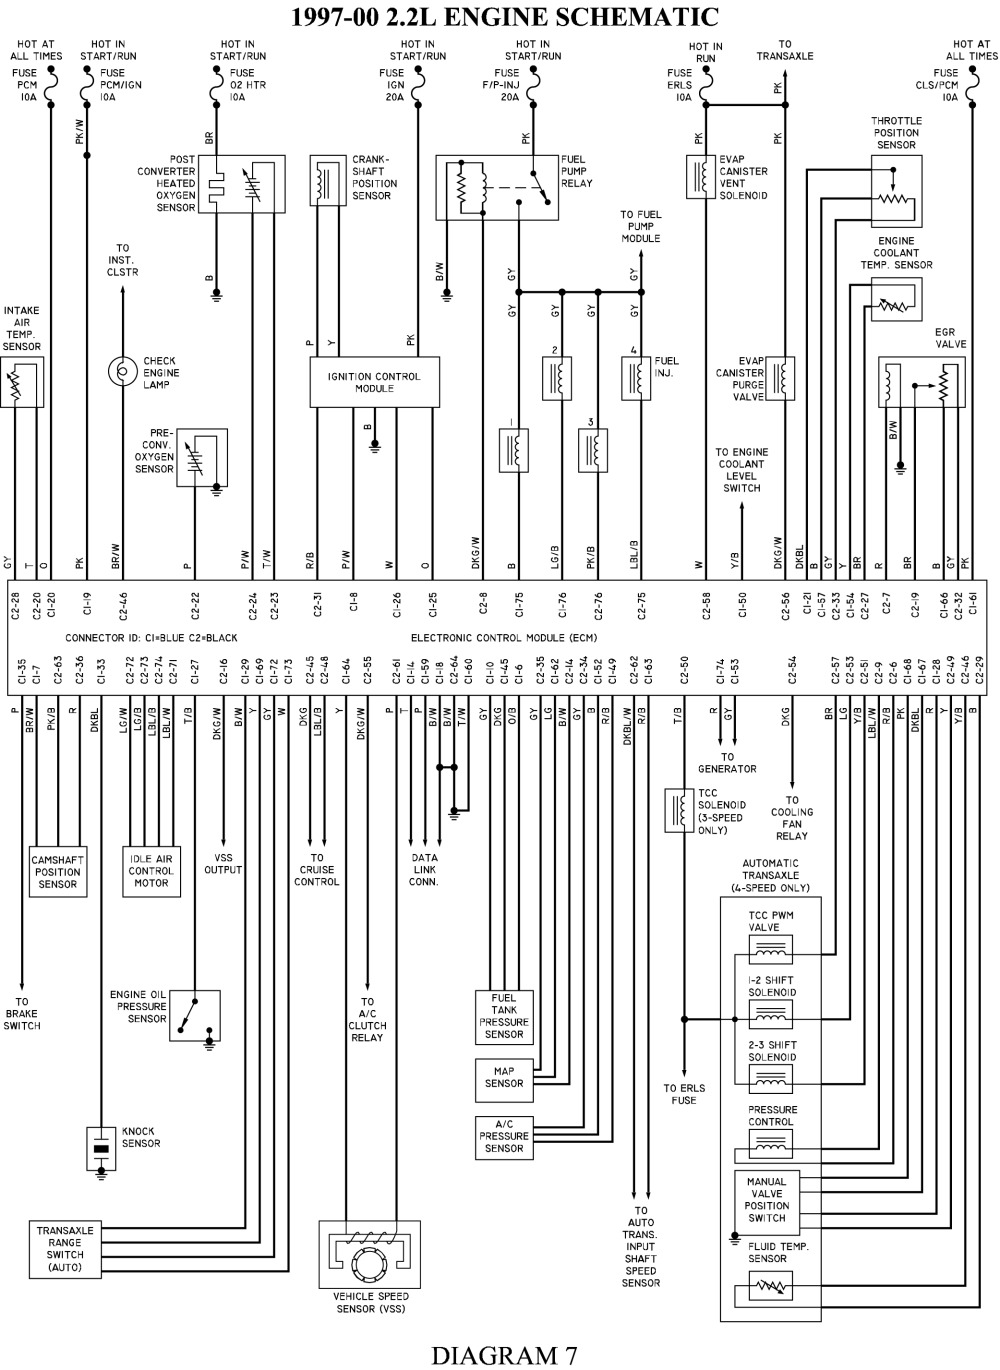 hight resolution of 2000 chevy cavalier computer location 2000 free engine ac system diagram for wiring on 2001 cavalier 2005 chevy cavalier power window wiring diagram